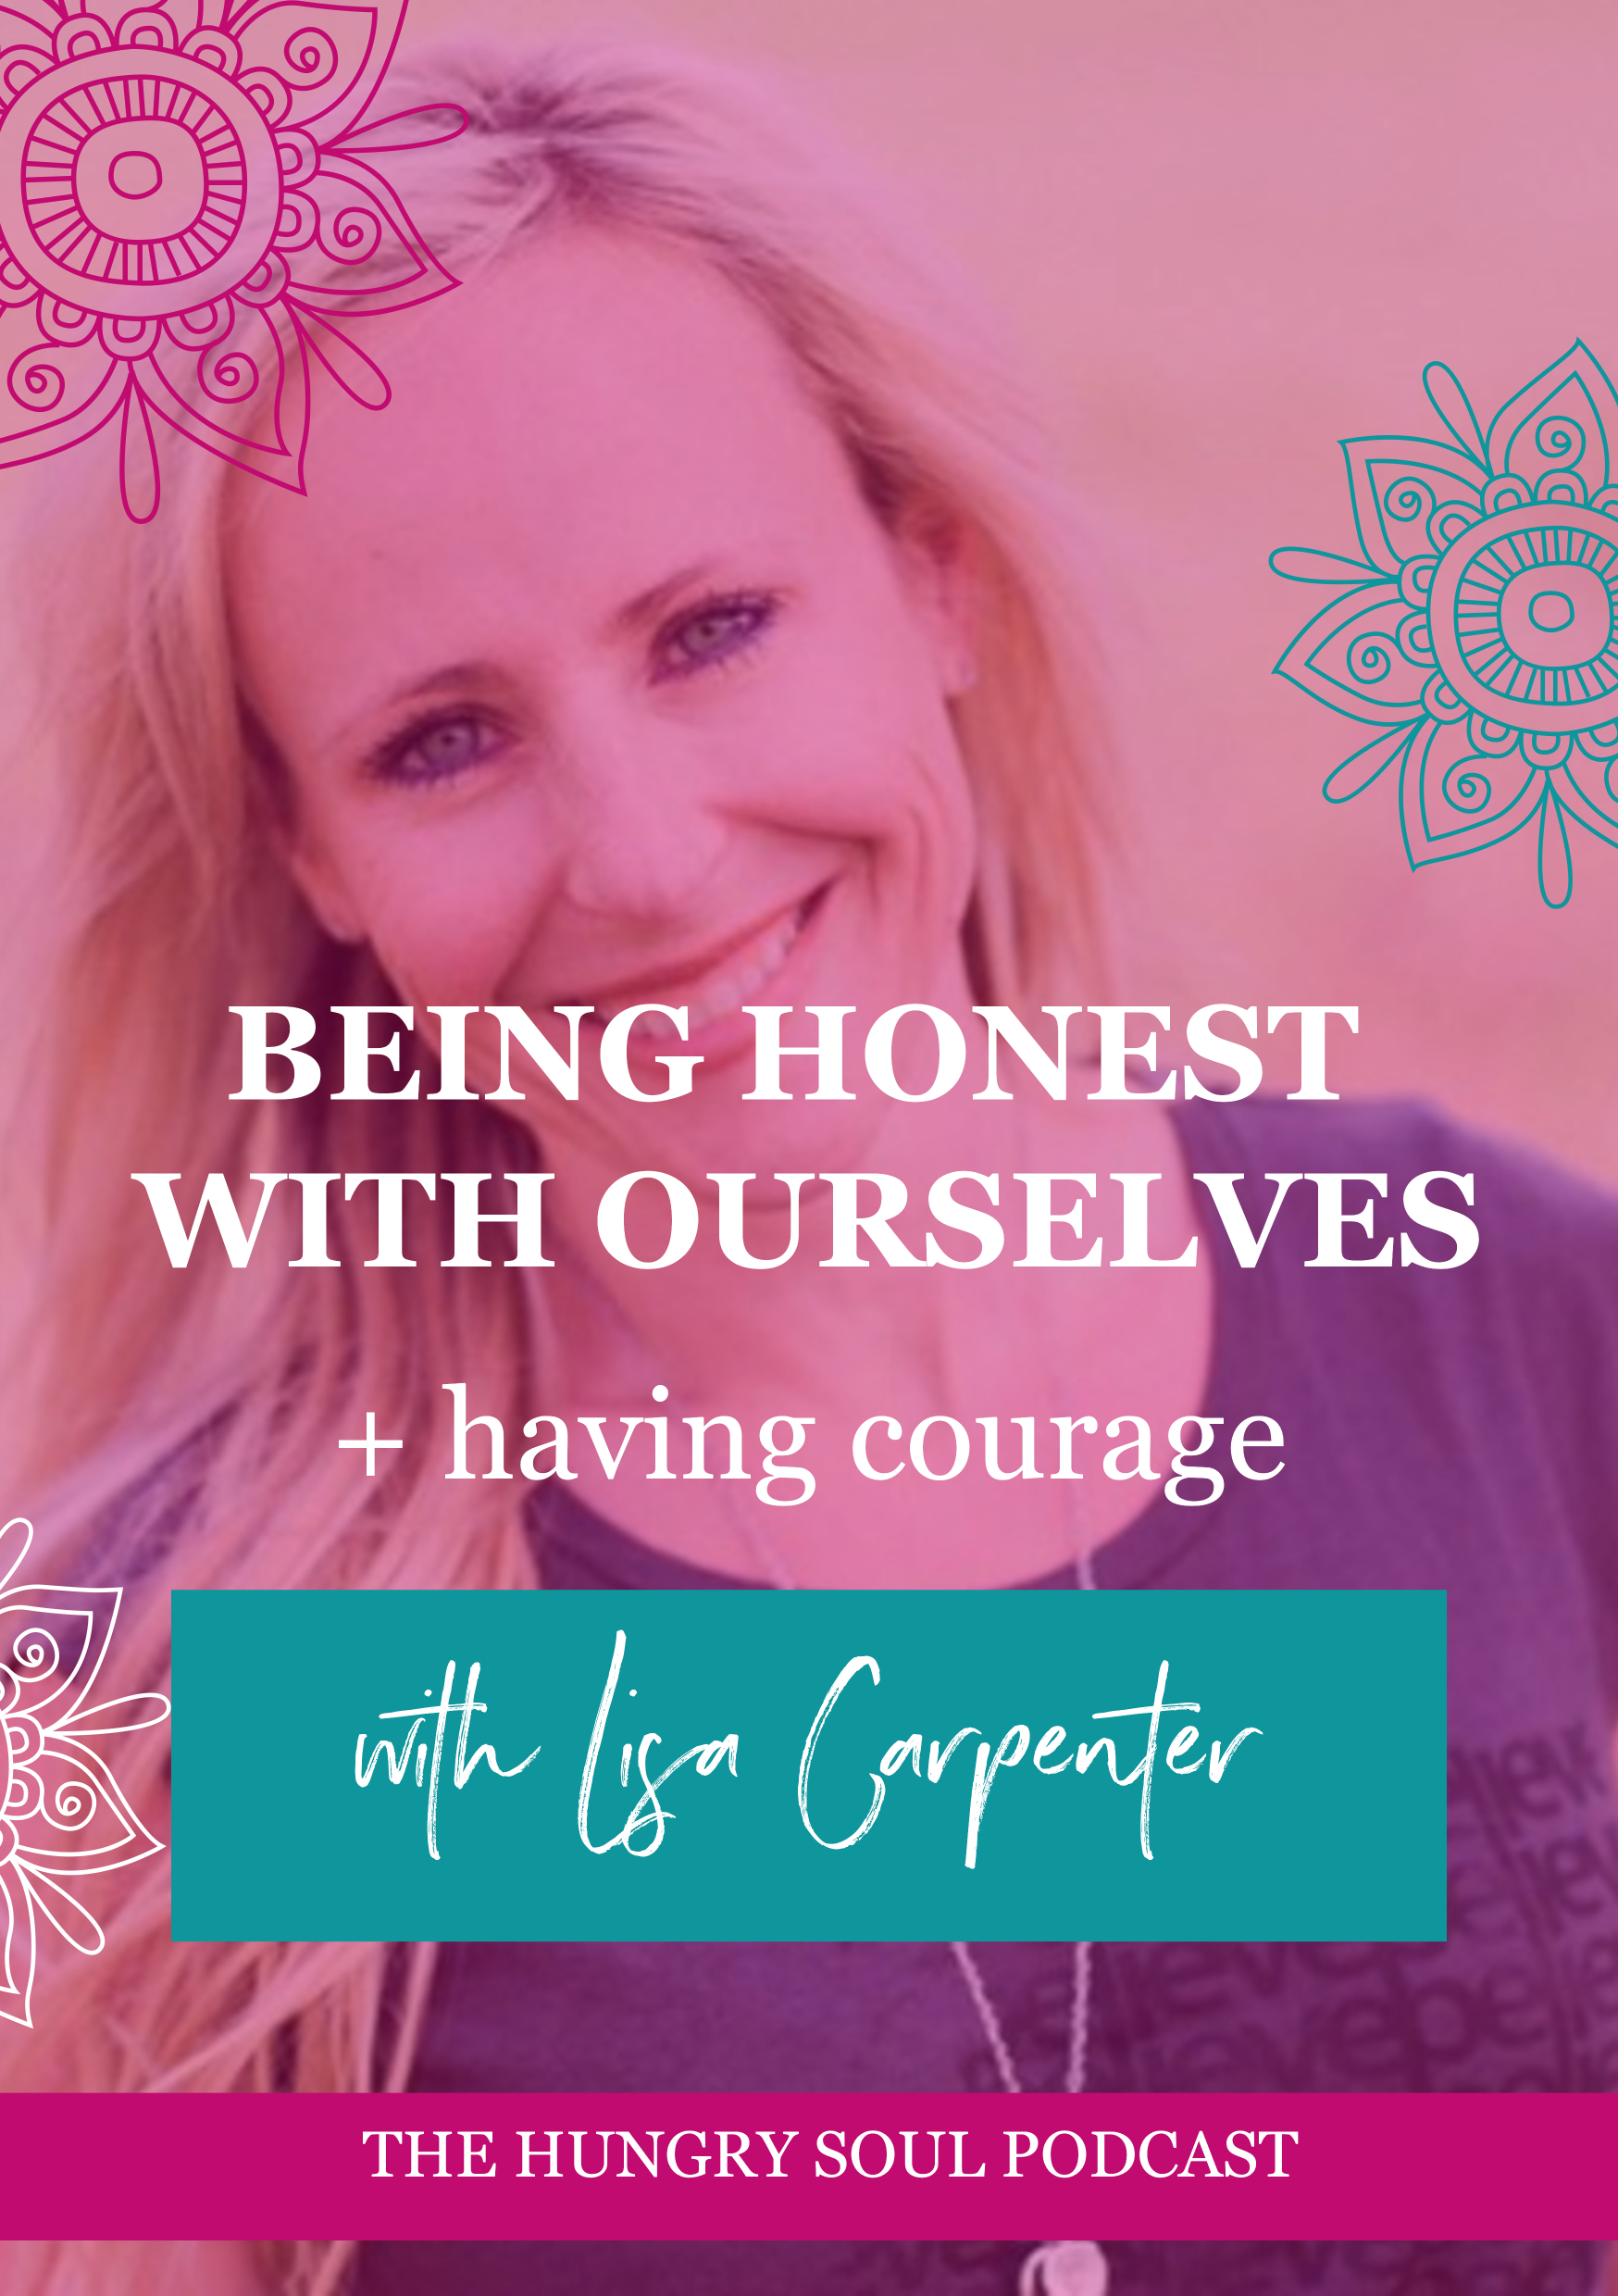 The Hungry Soul host Rachel Foy interviews Lisa Carpenter on how we need to become honest with ourselves and find the courage to create the life we want